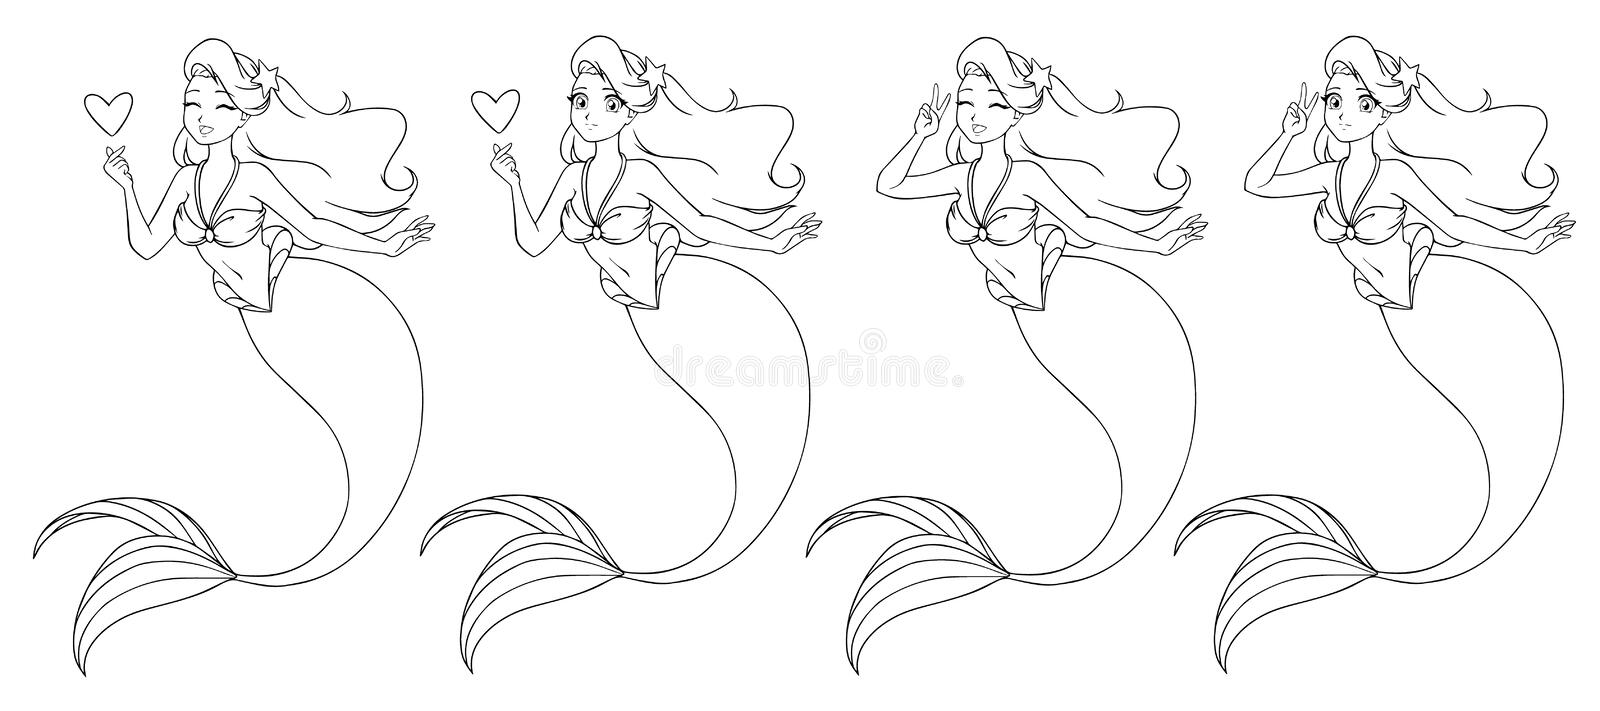 Pretty anime mermaid holding a heart and using V sign. Open and closed eyes versions. vector illustration